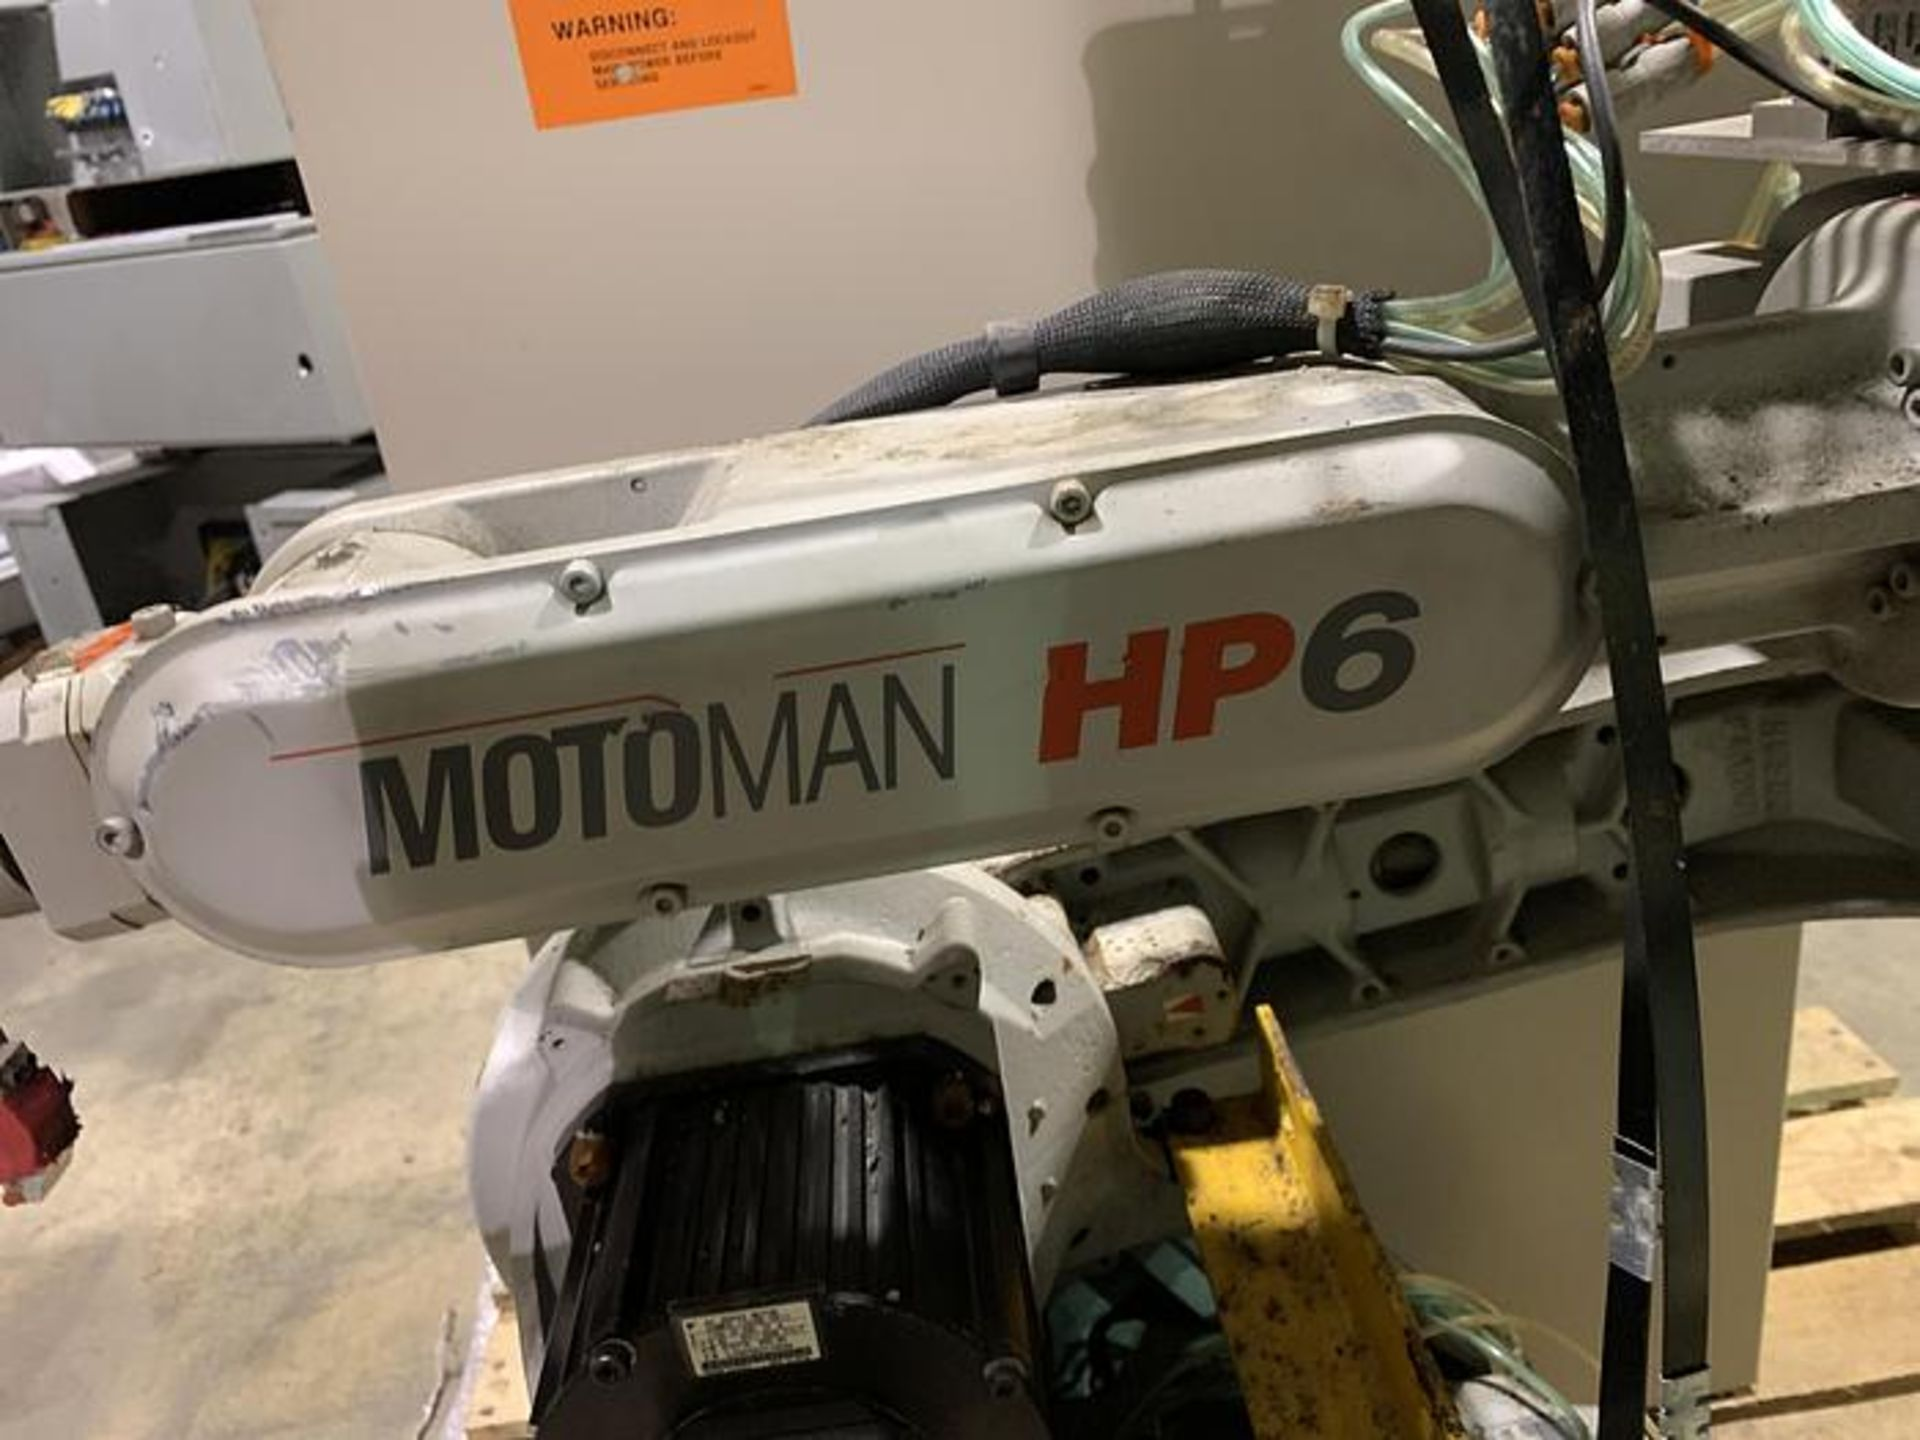 MOTOMAN ROBOT HP6 6KG X 1378MM, REACH NX00 CONTROLLER, CABLES & TEACH, SN ORDER NUMBER S46A61-1-2 - Image 2 of 5